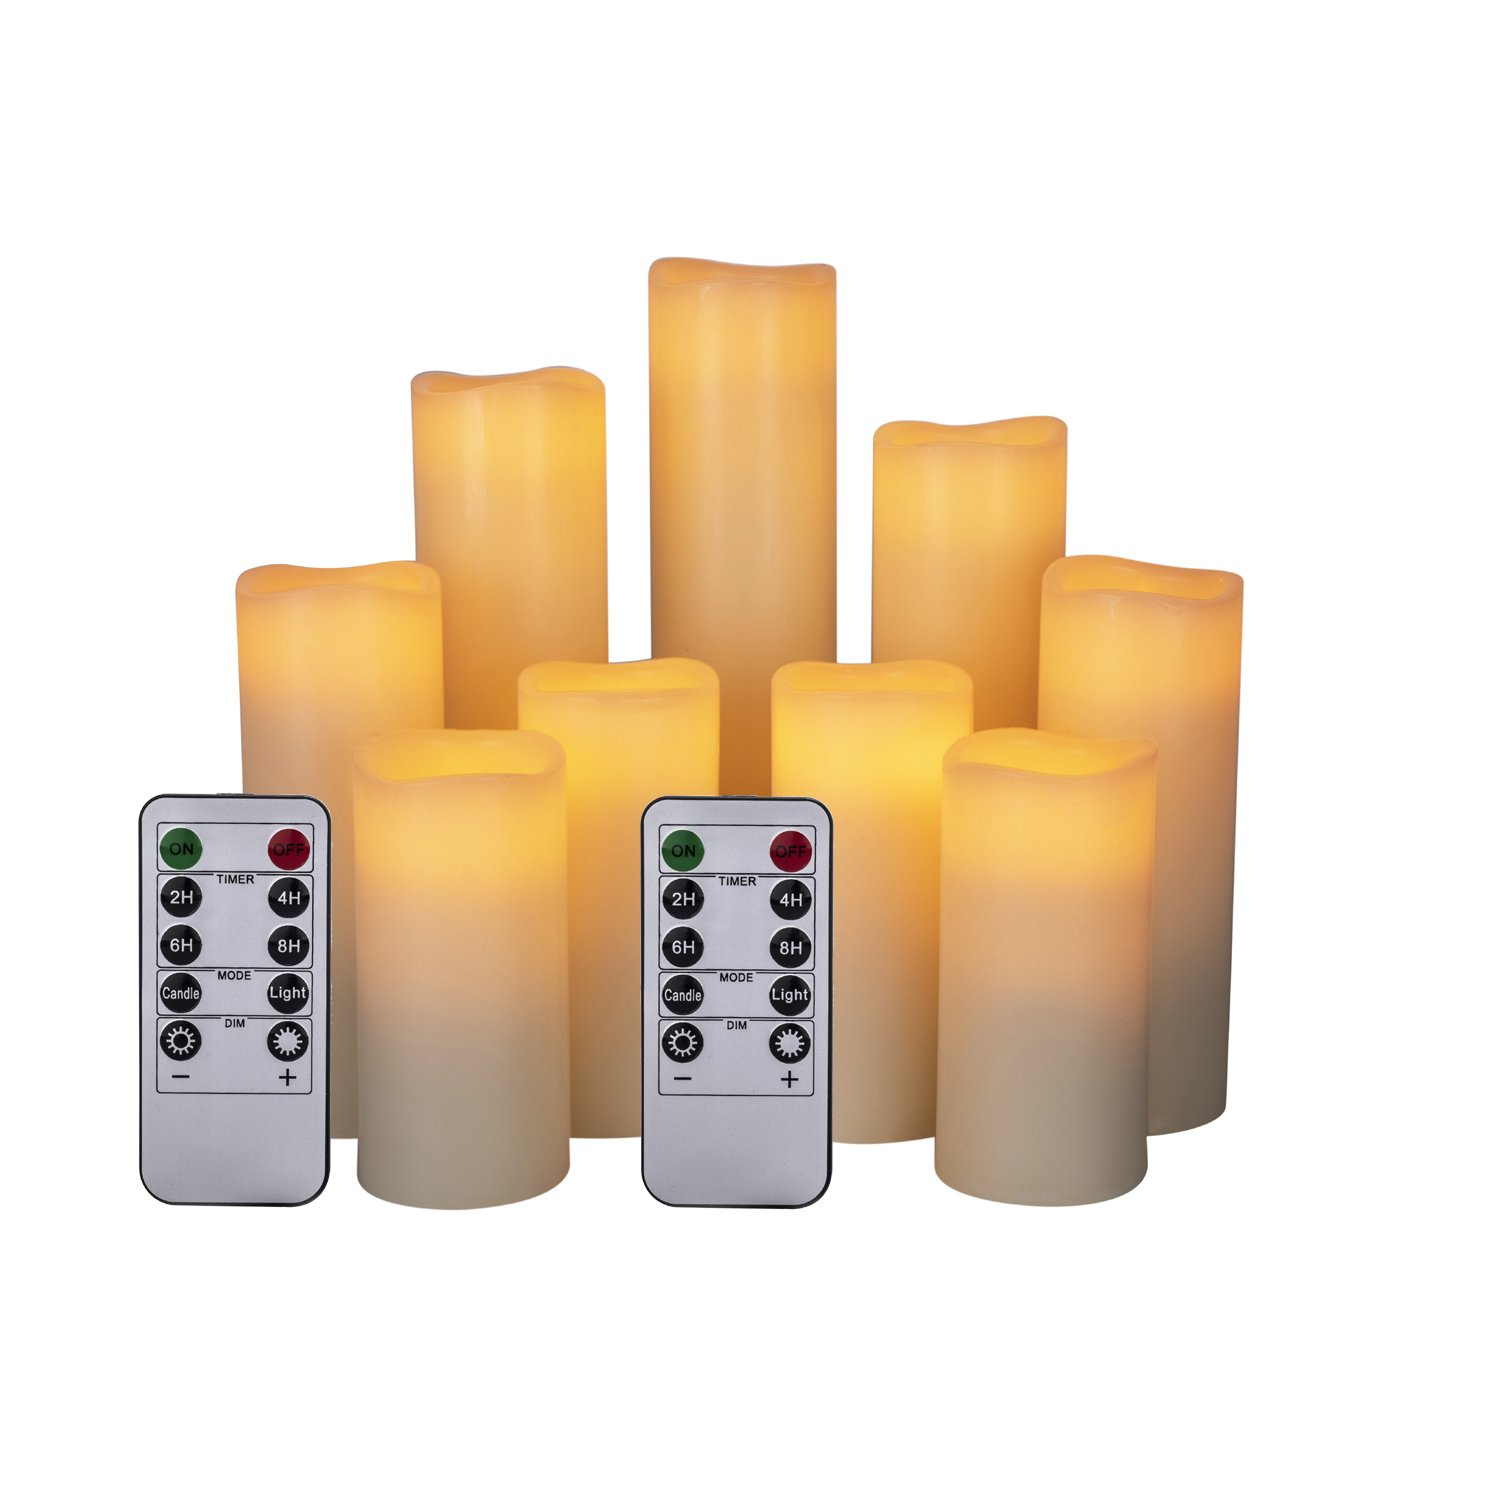 HANZIM Flameless Candles Battery Operated Candles 4'' 5'' 6'' 7'' 8'' 9'' Set of 9 Ivory Real Wax Pillar LED Candles with 10-key Remote and Cycling 24 Hours Timer (9)